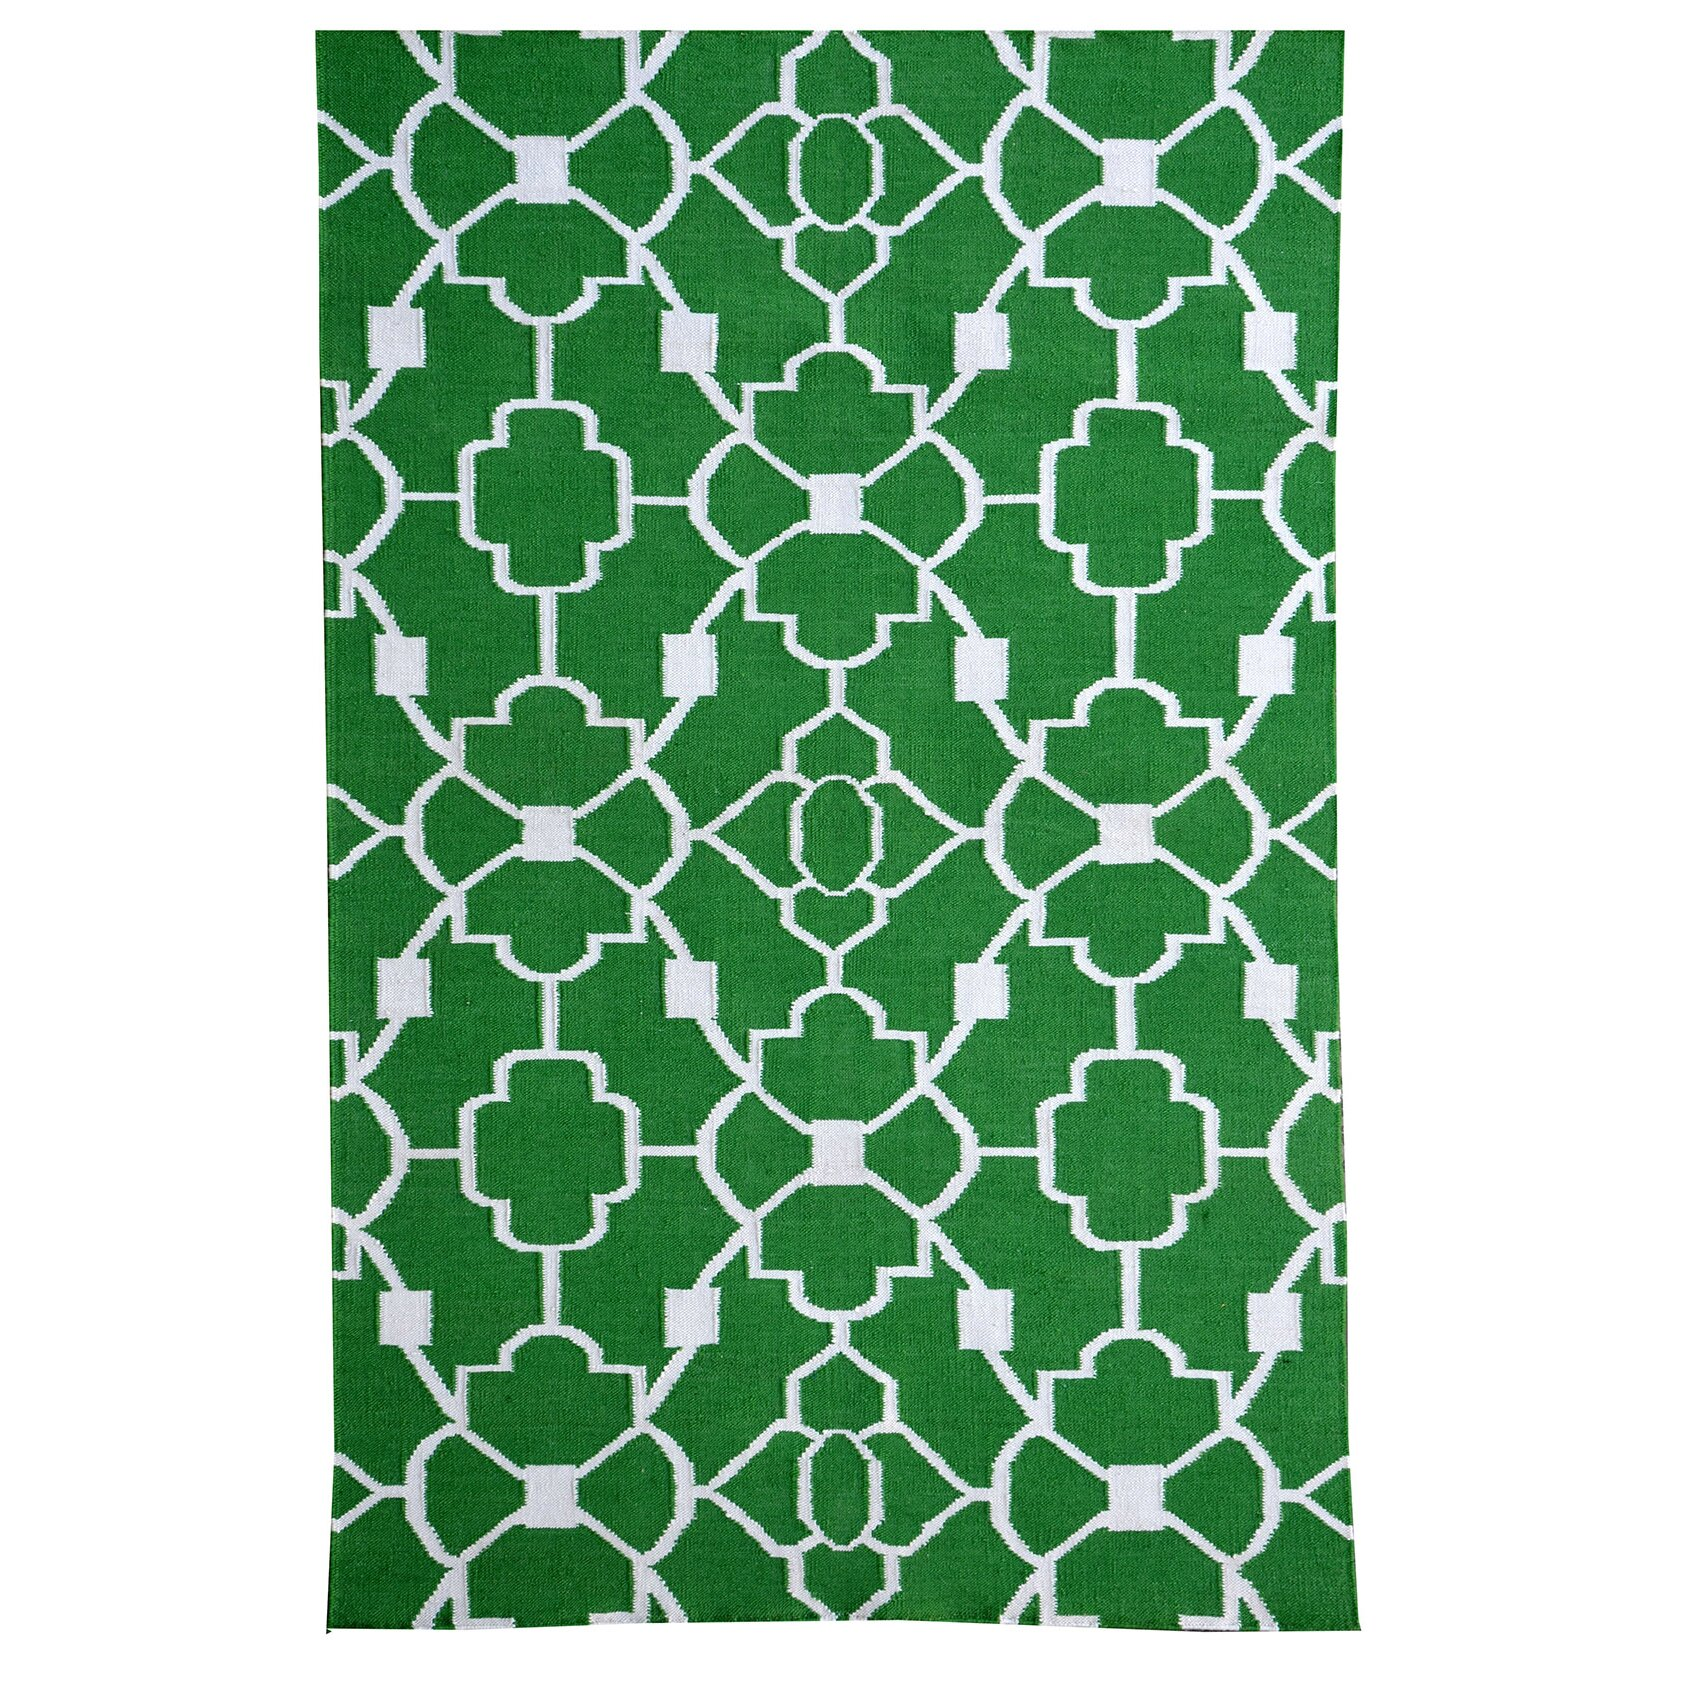 Meva rugs thai 02 green indoor outdoor area rug wayfair for Indoor outdoor carpet green